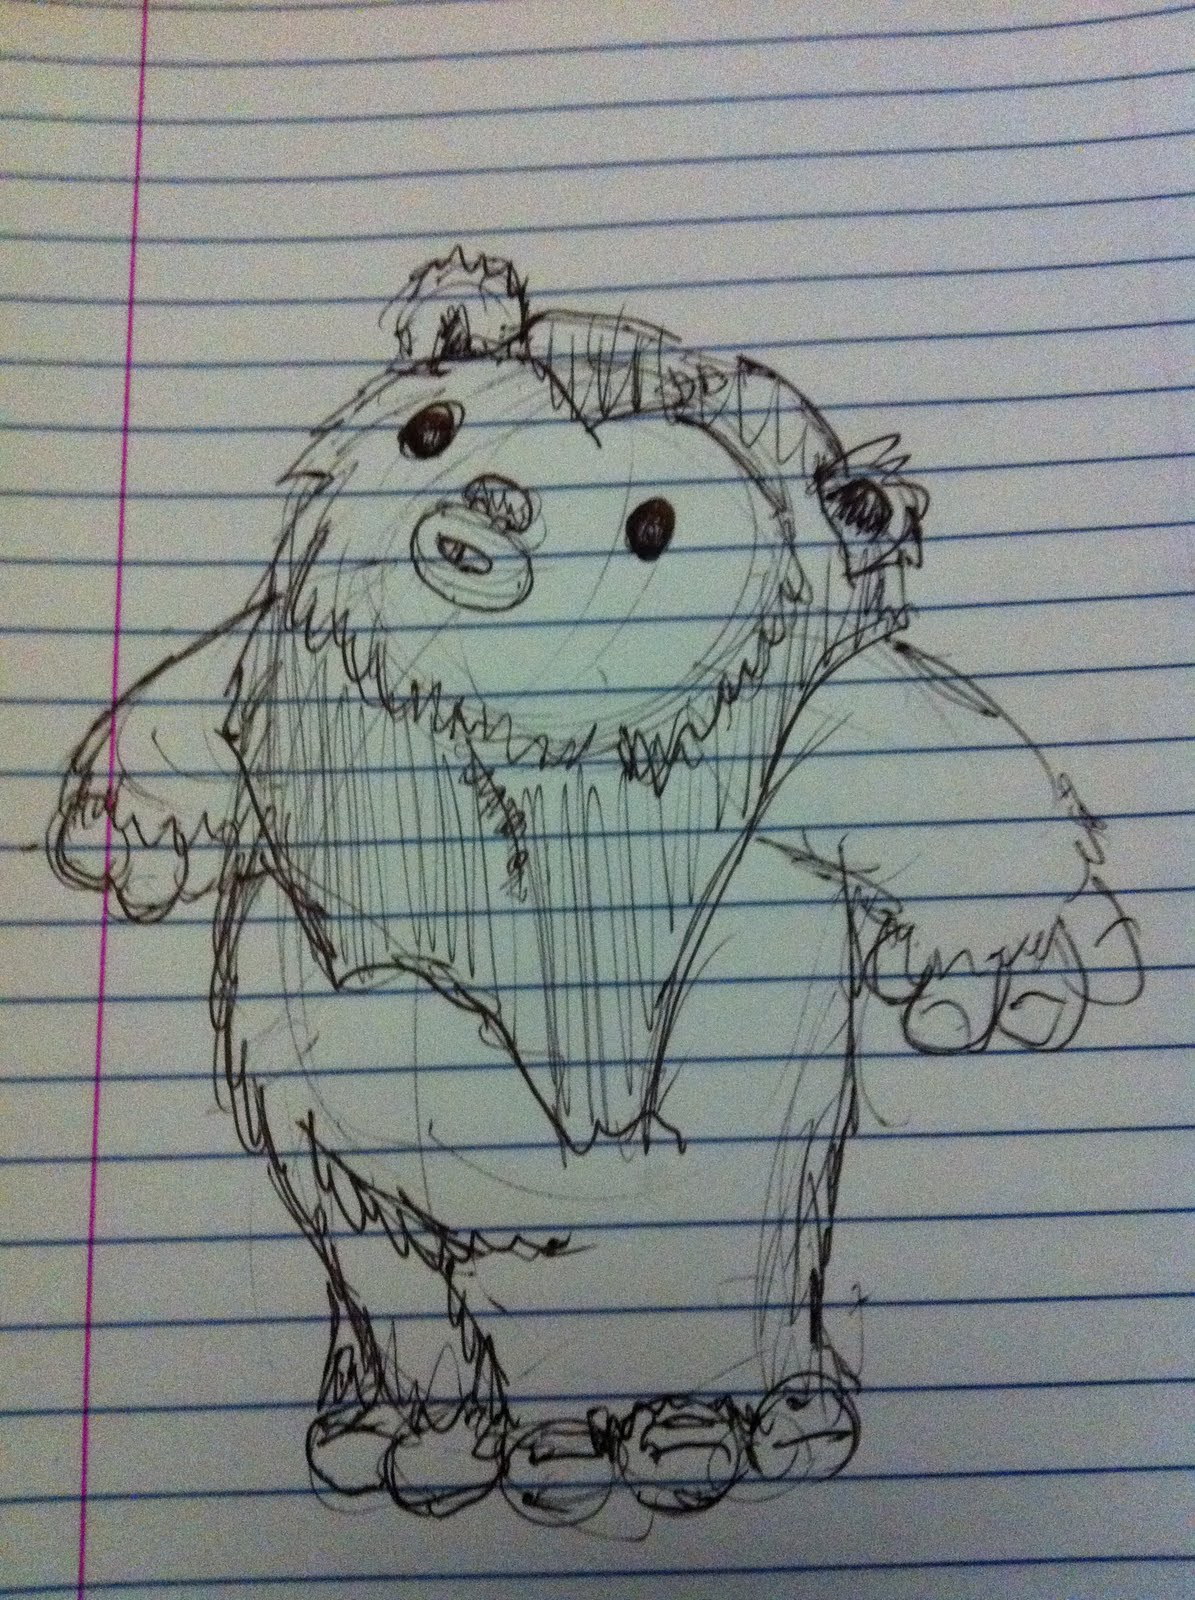 A Million Bad Drawings: Another Ewok? Bad Drawing #75